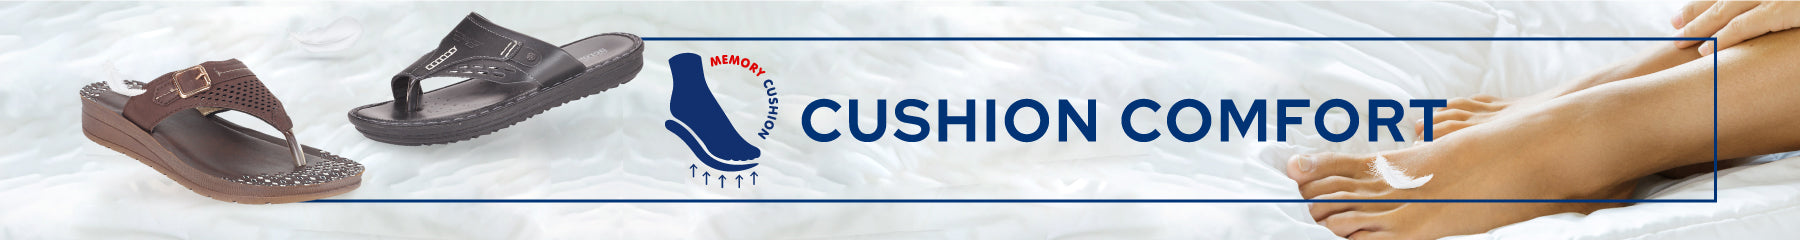 Cushion Comfort Collection